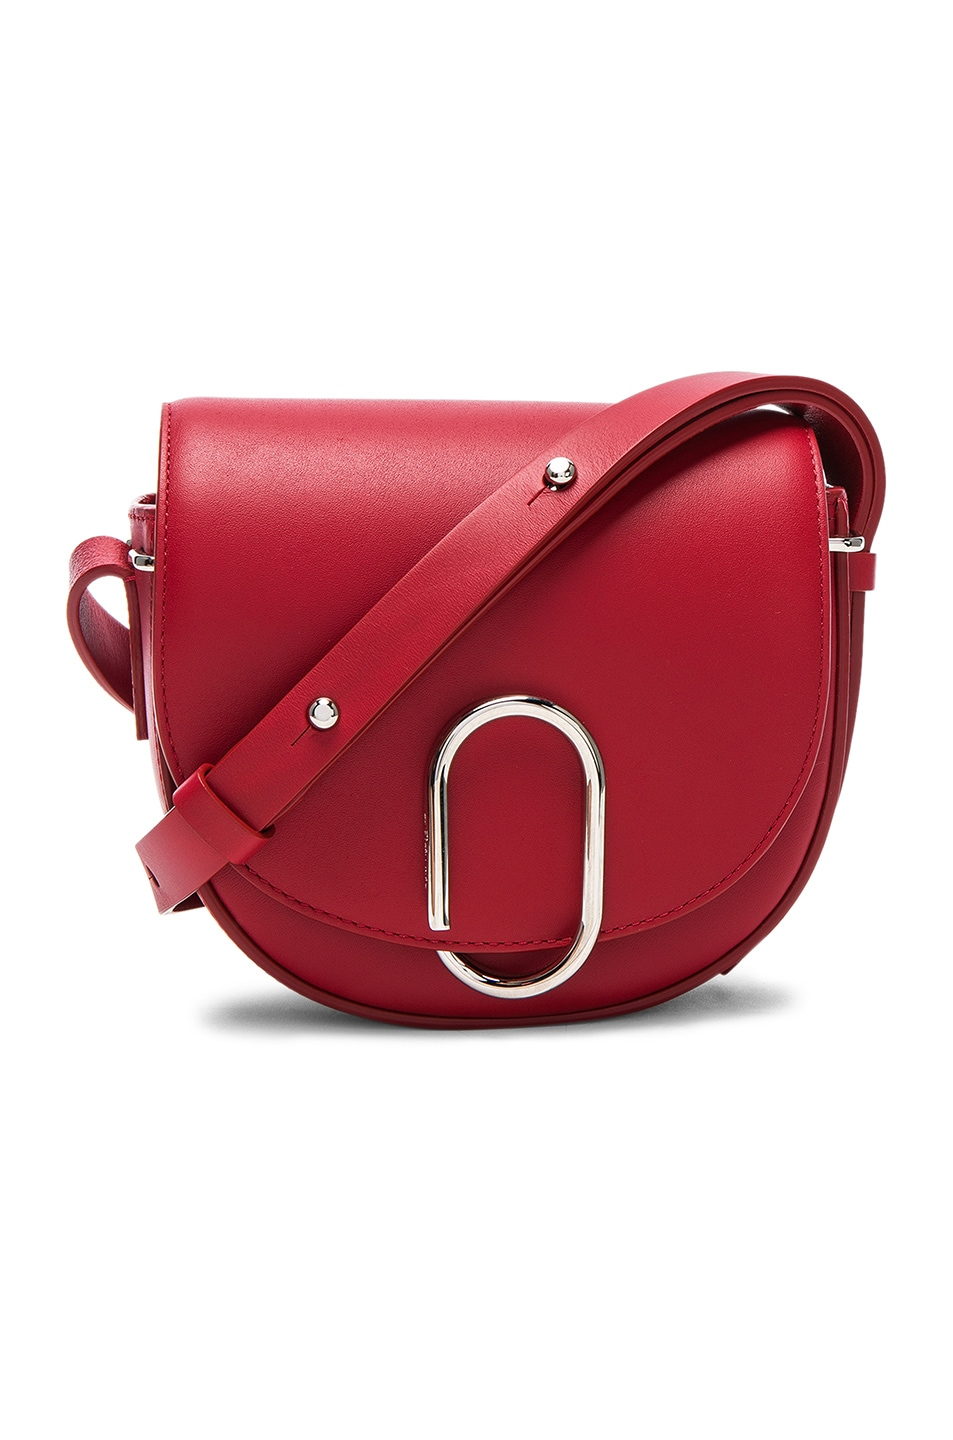 Image 1 of 3.1 phillip lim Alix Mini Saddle Crossbody Bag in Scarlet